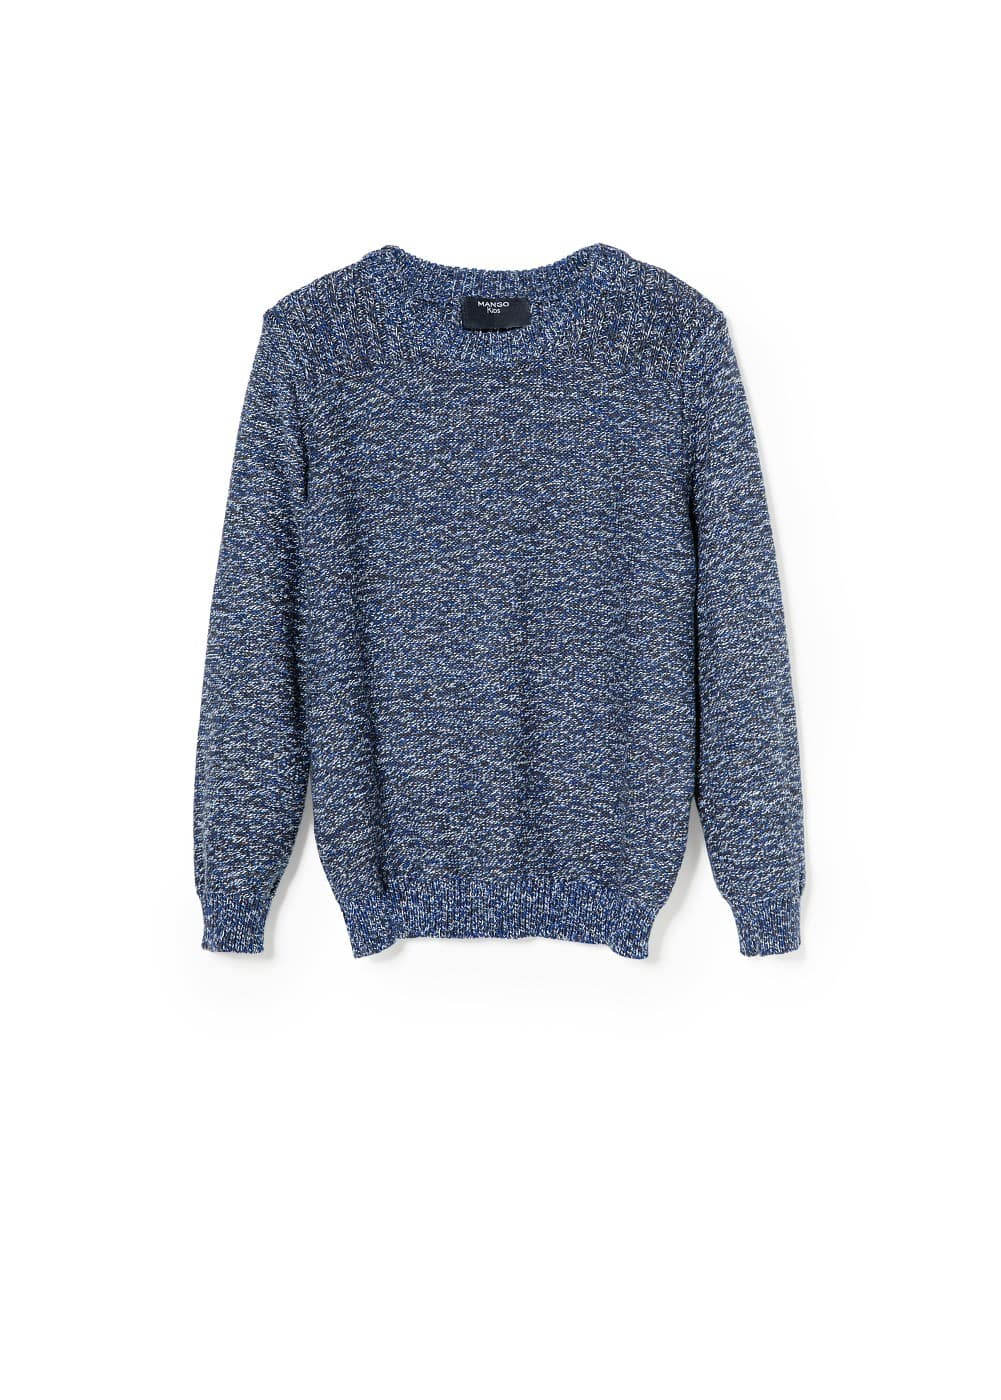 Flecked sweater